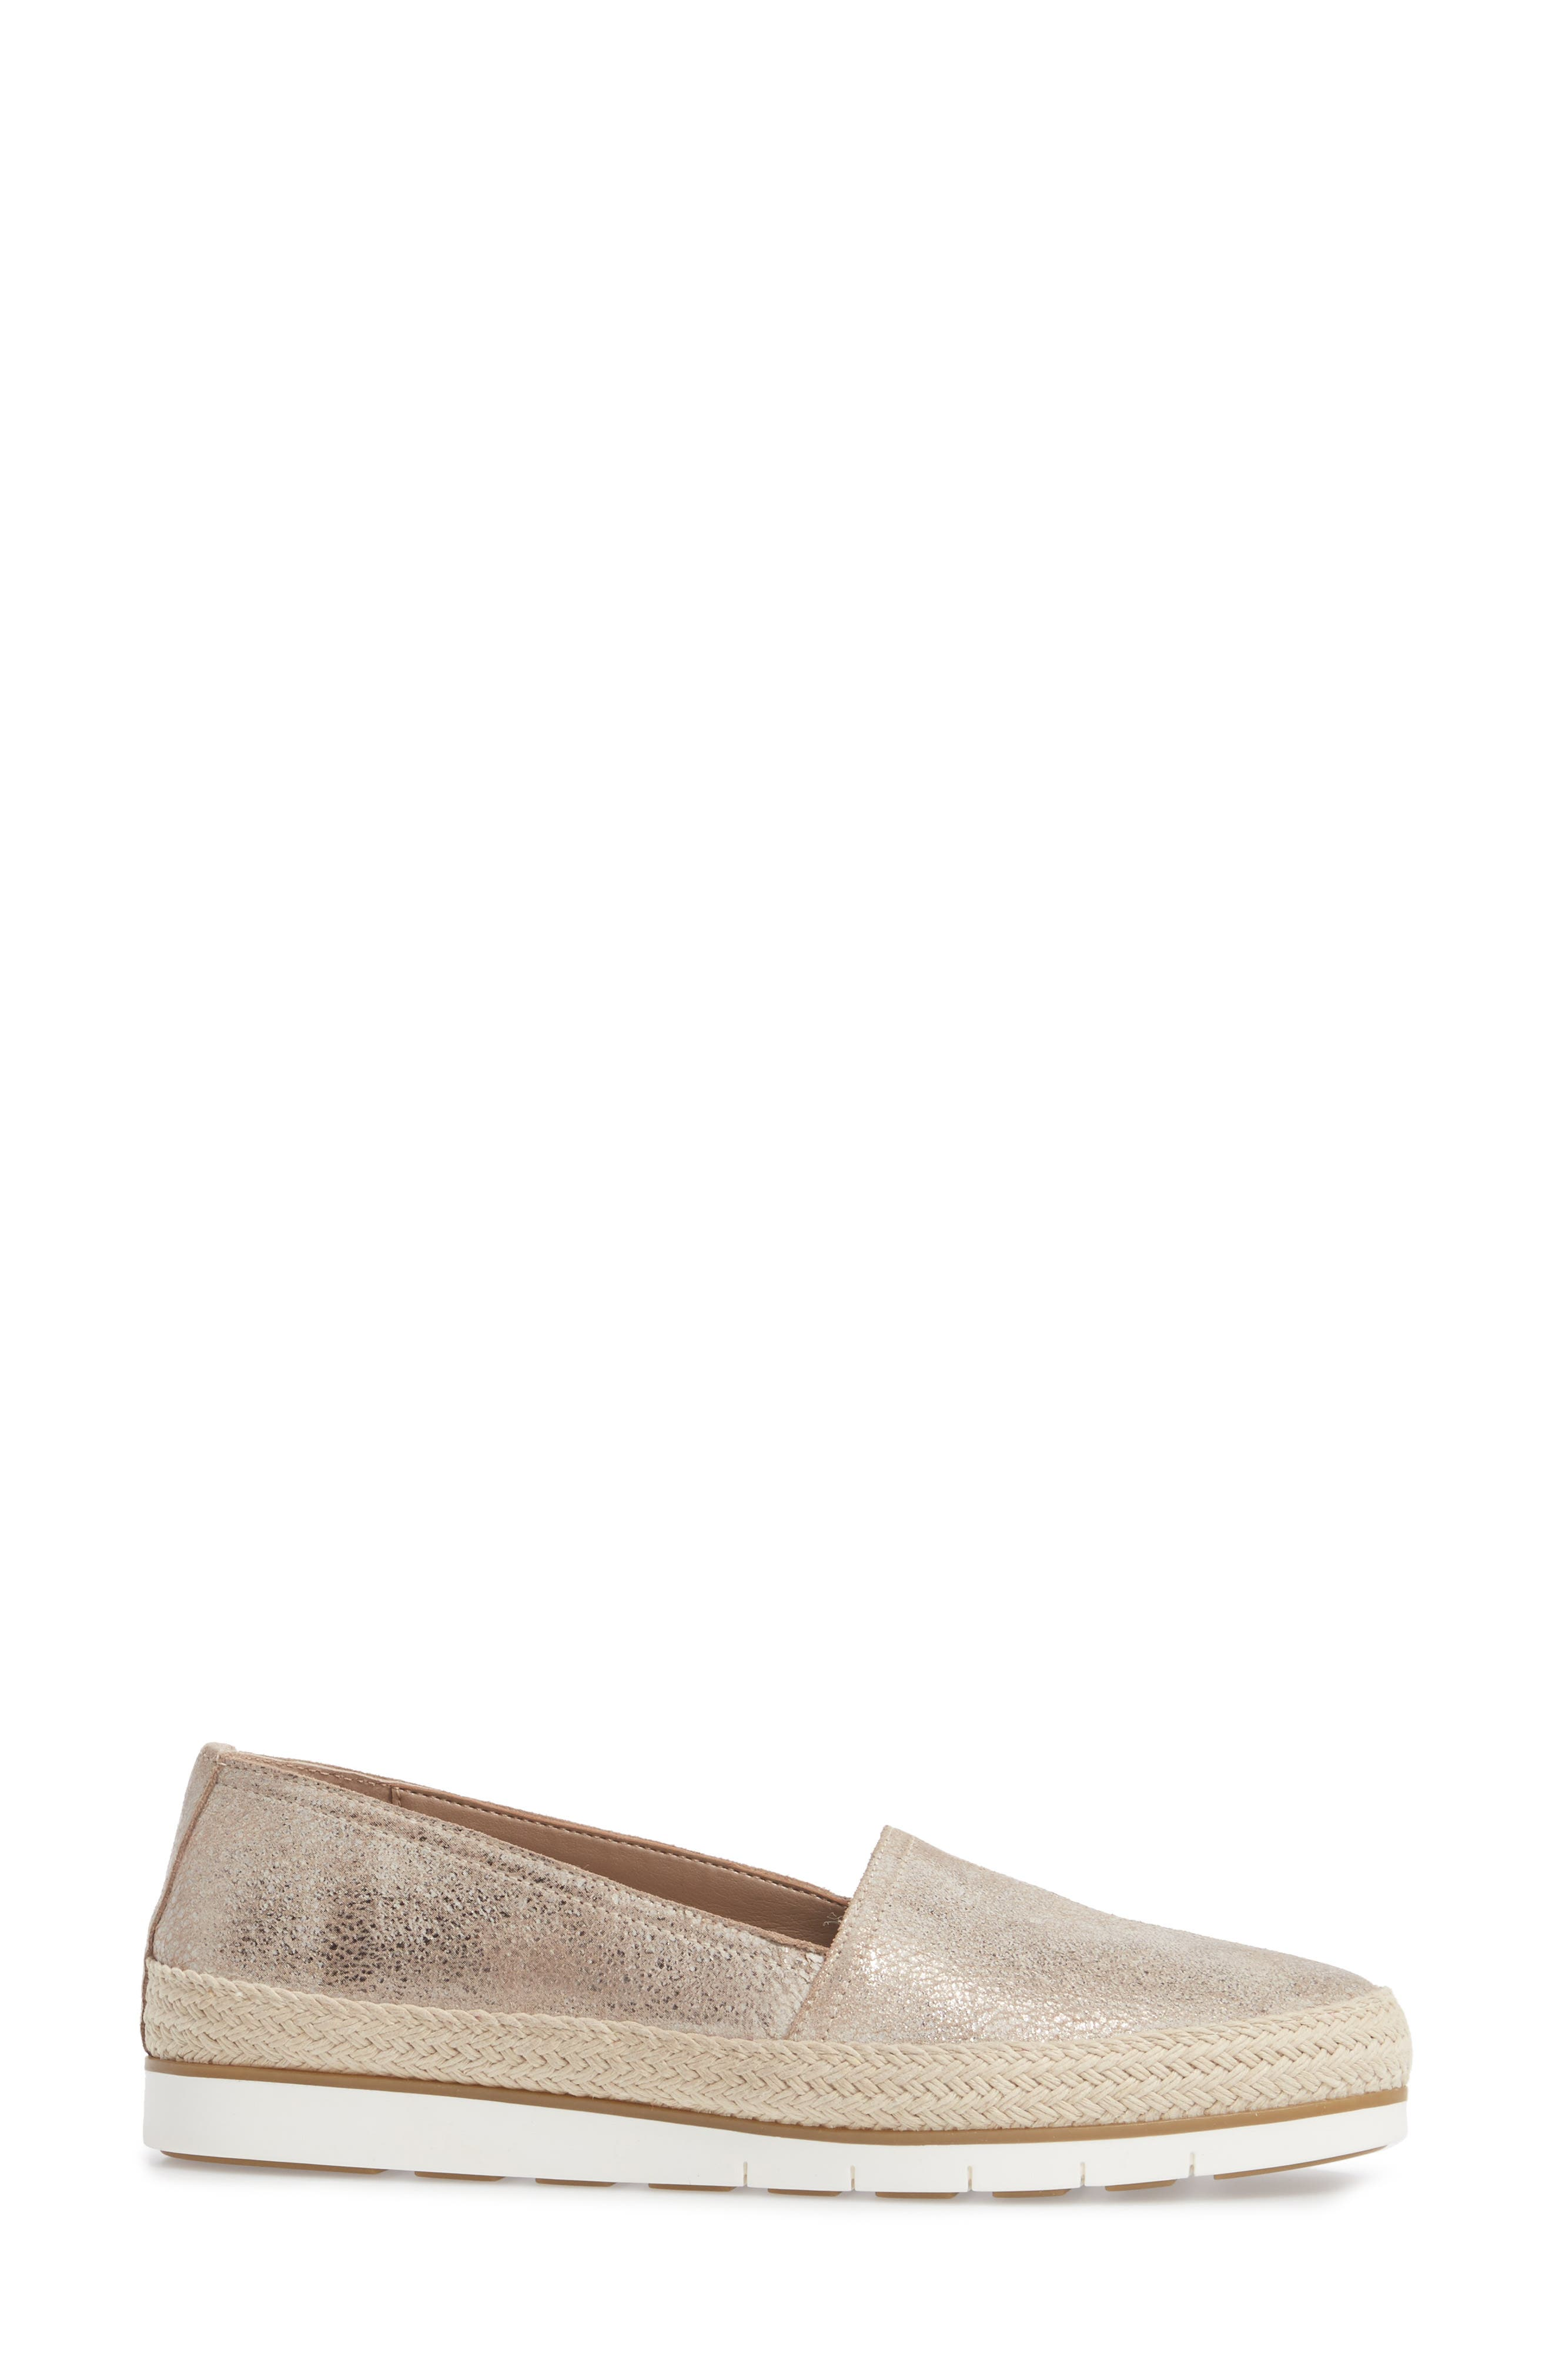 Palm Slip-On Sneaker,                             Alternate thumbnail 3, color,                             Taupe Fabric